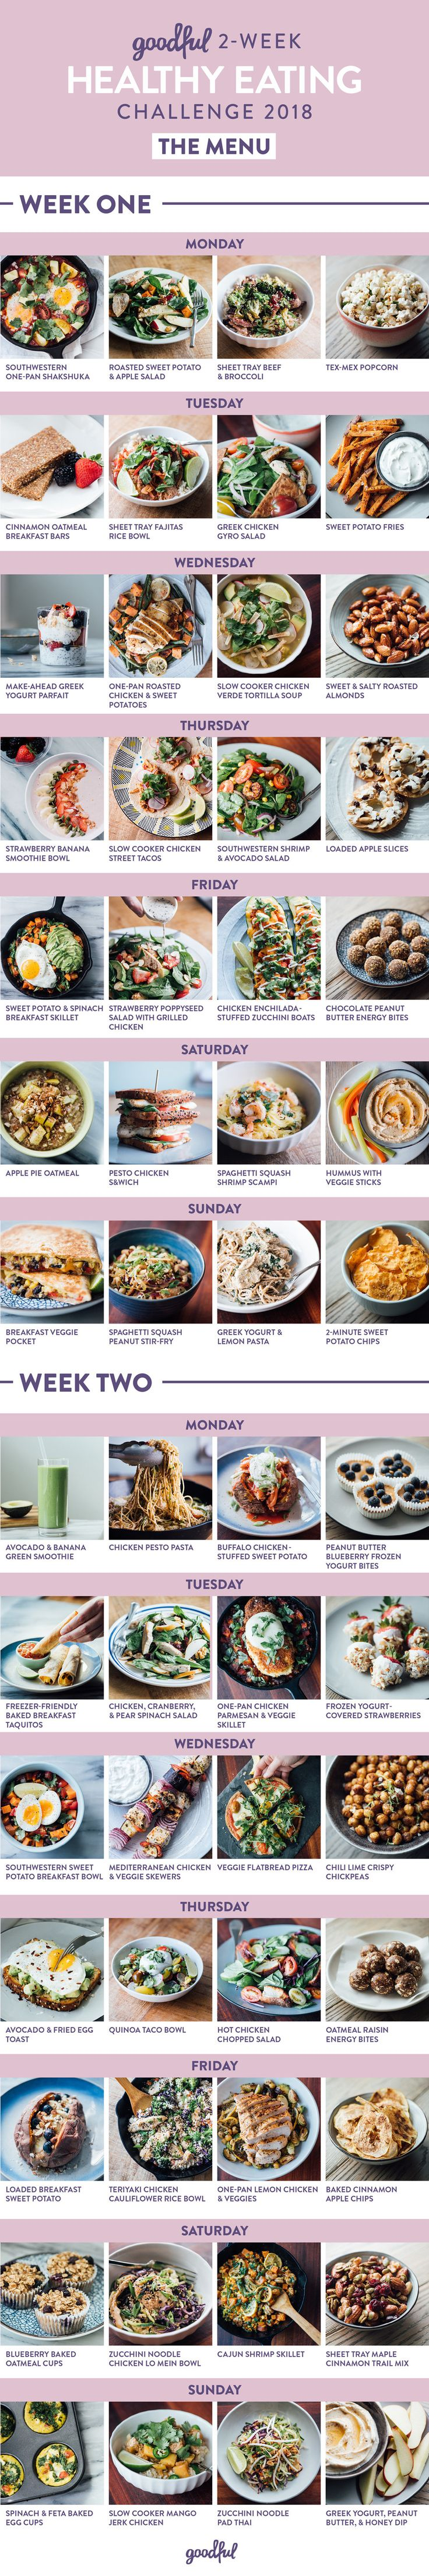 Say hello to the Goodful 2-Week Healthy Eating Challenge 2018!